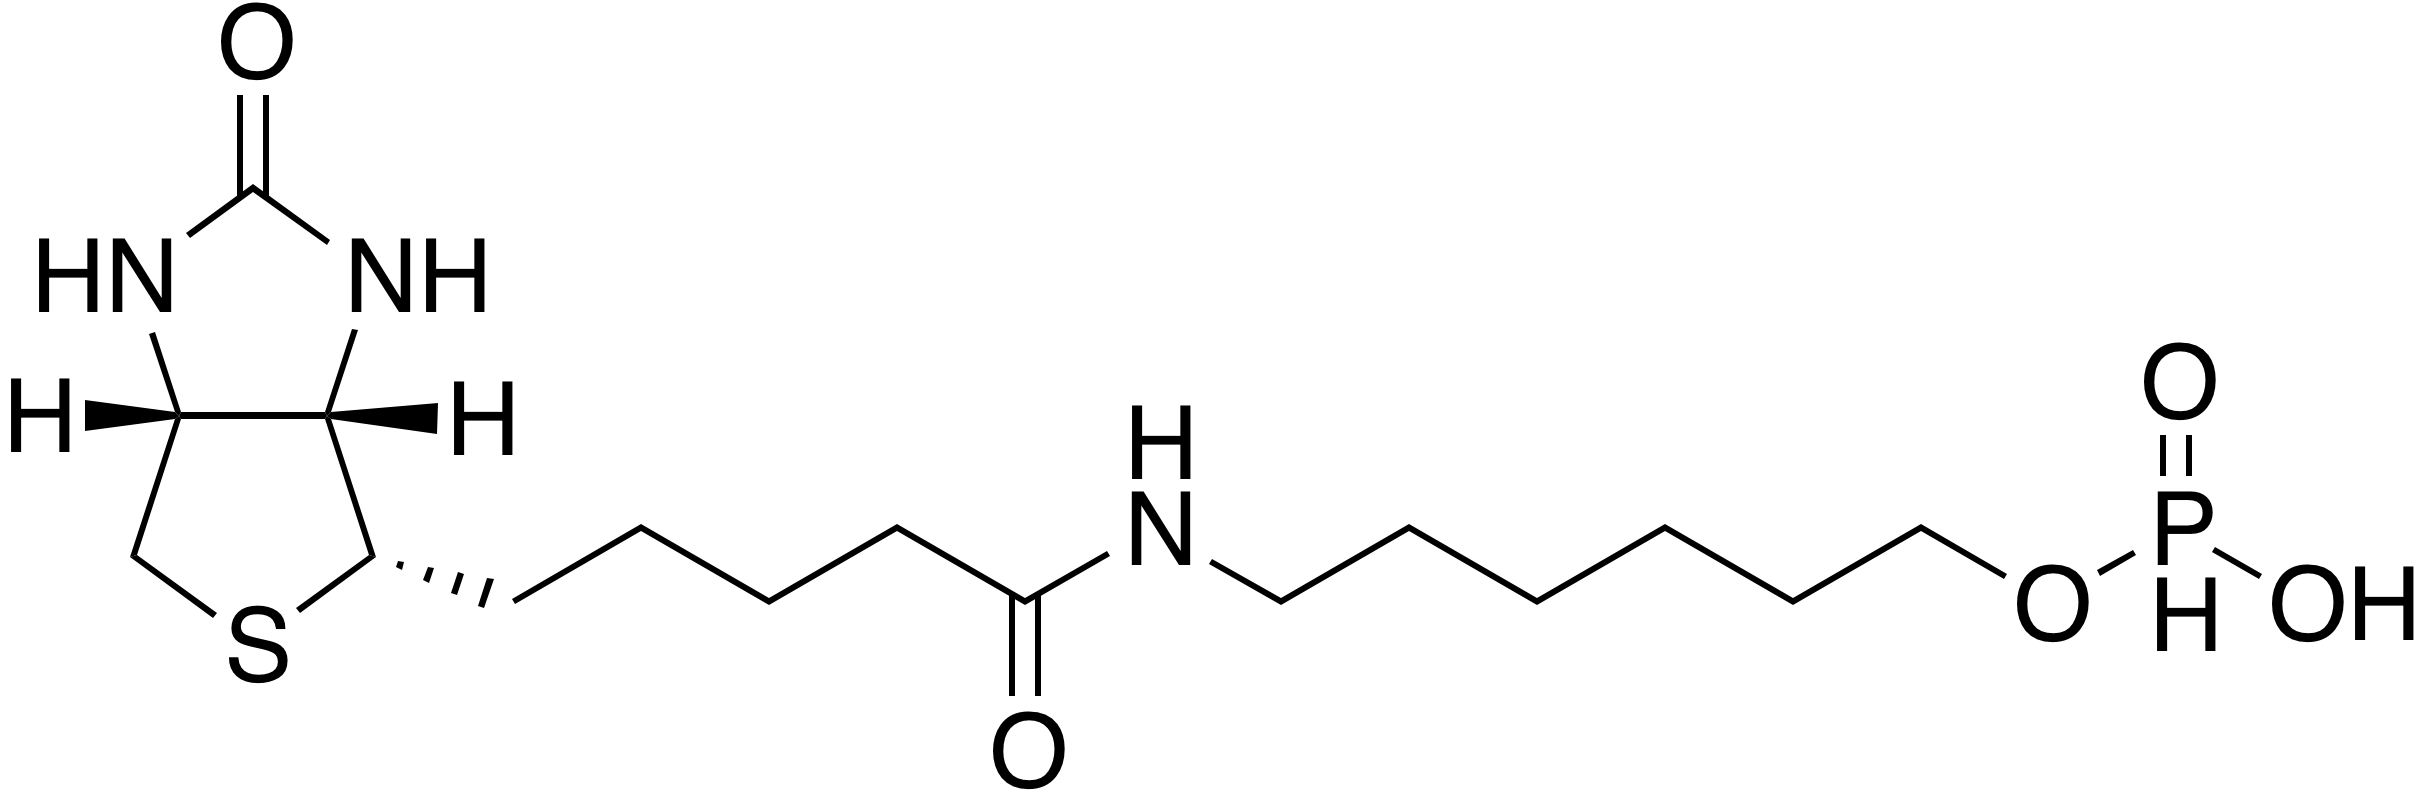 6-N-Biotinylaminohexyl hydrogenphosphonate